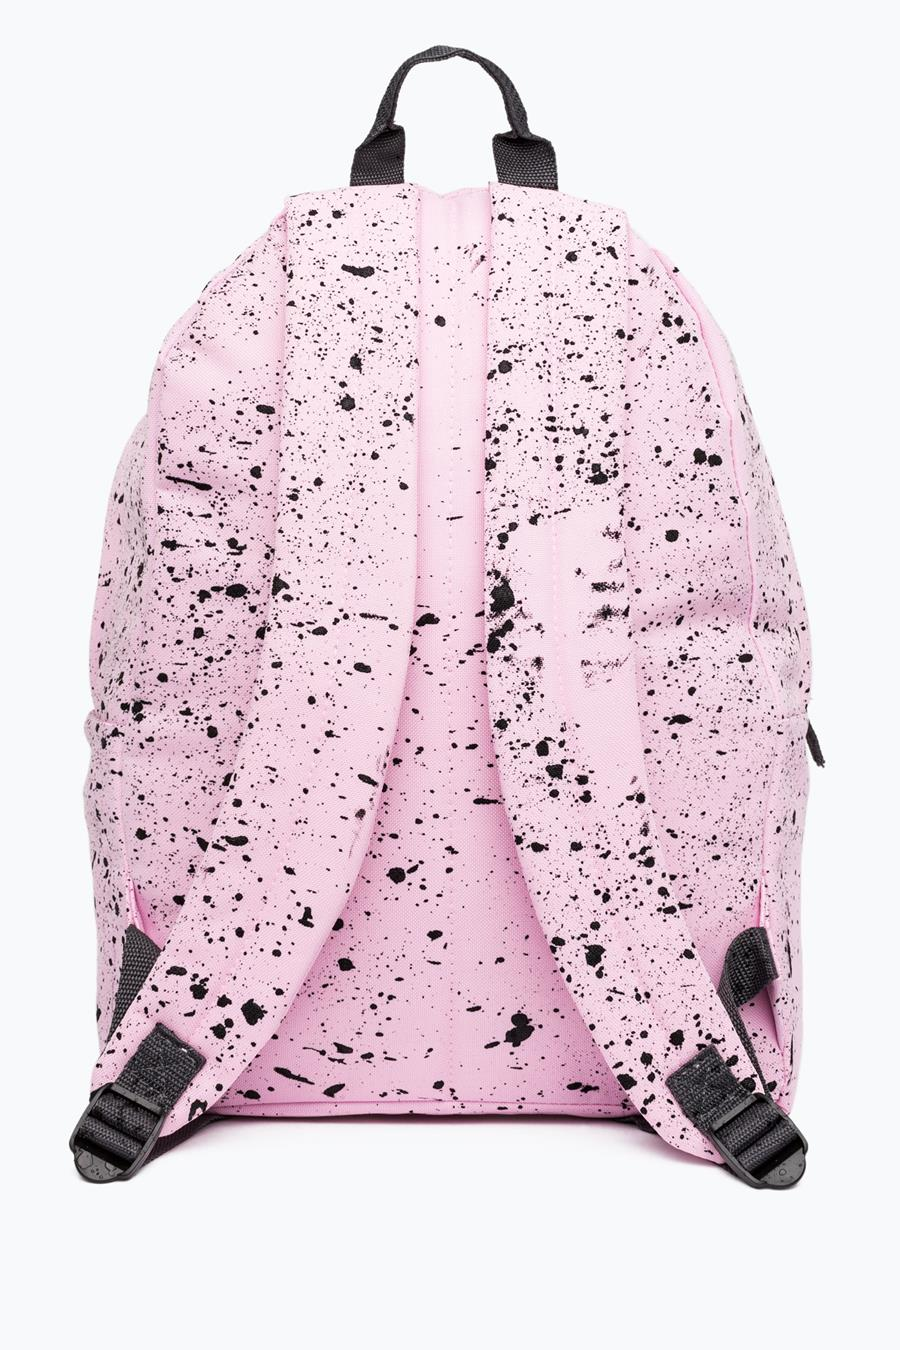 9ab95b12952b HYPE BABY PINK WITH BLACK SPECKLE BACKPACK – JustHype ltd